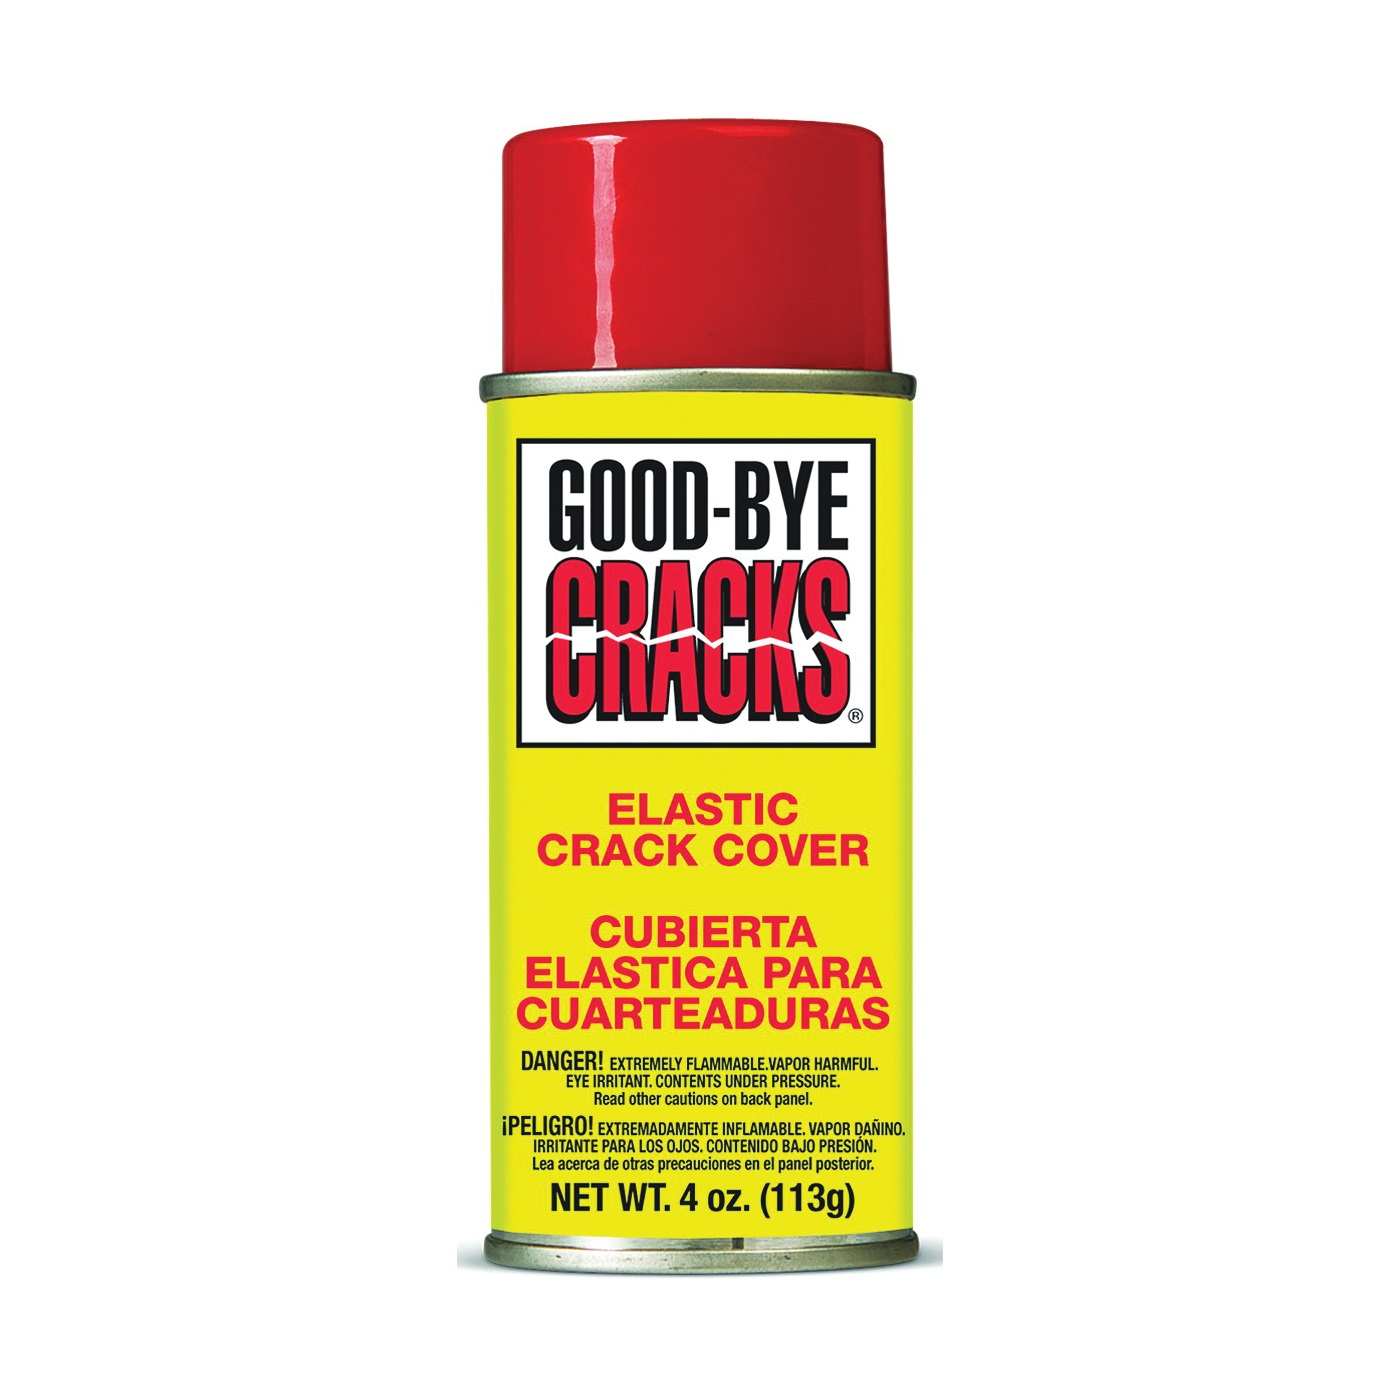 Picture of Goof Off Goodbye Cracks FG695 Crack Cover Spray, Liquid, Opaque/Off White, 4 oz Package, Aerosol Can